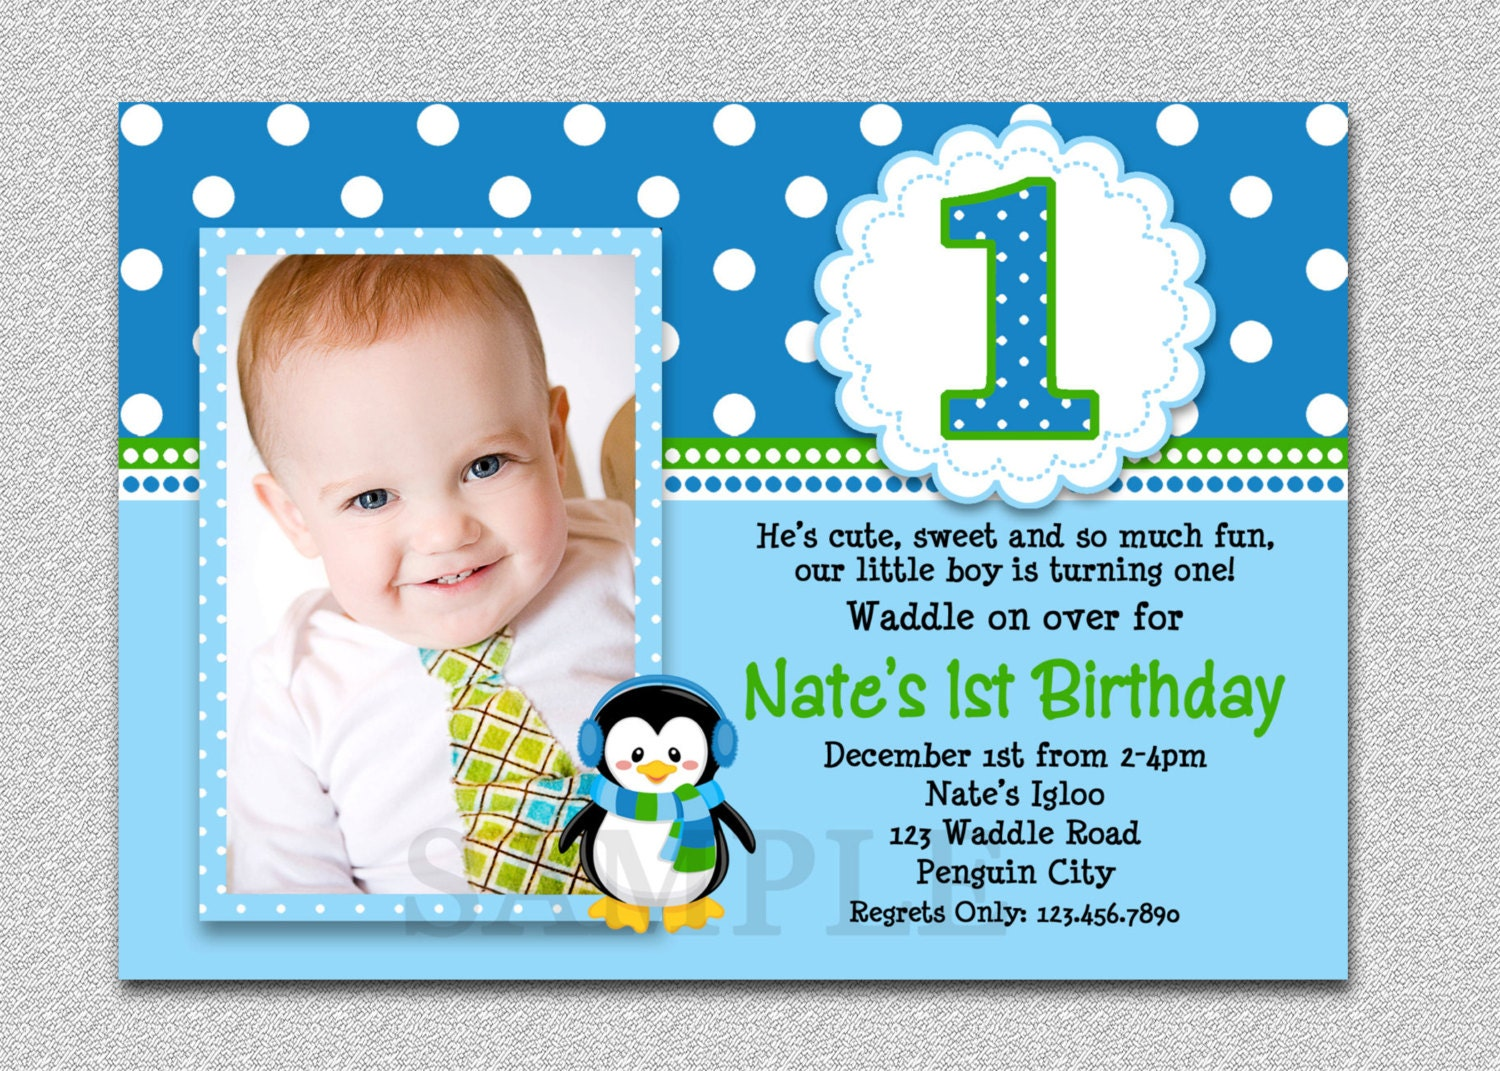 1st birthday party invitations for boys Minimfagencyco